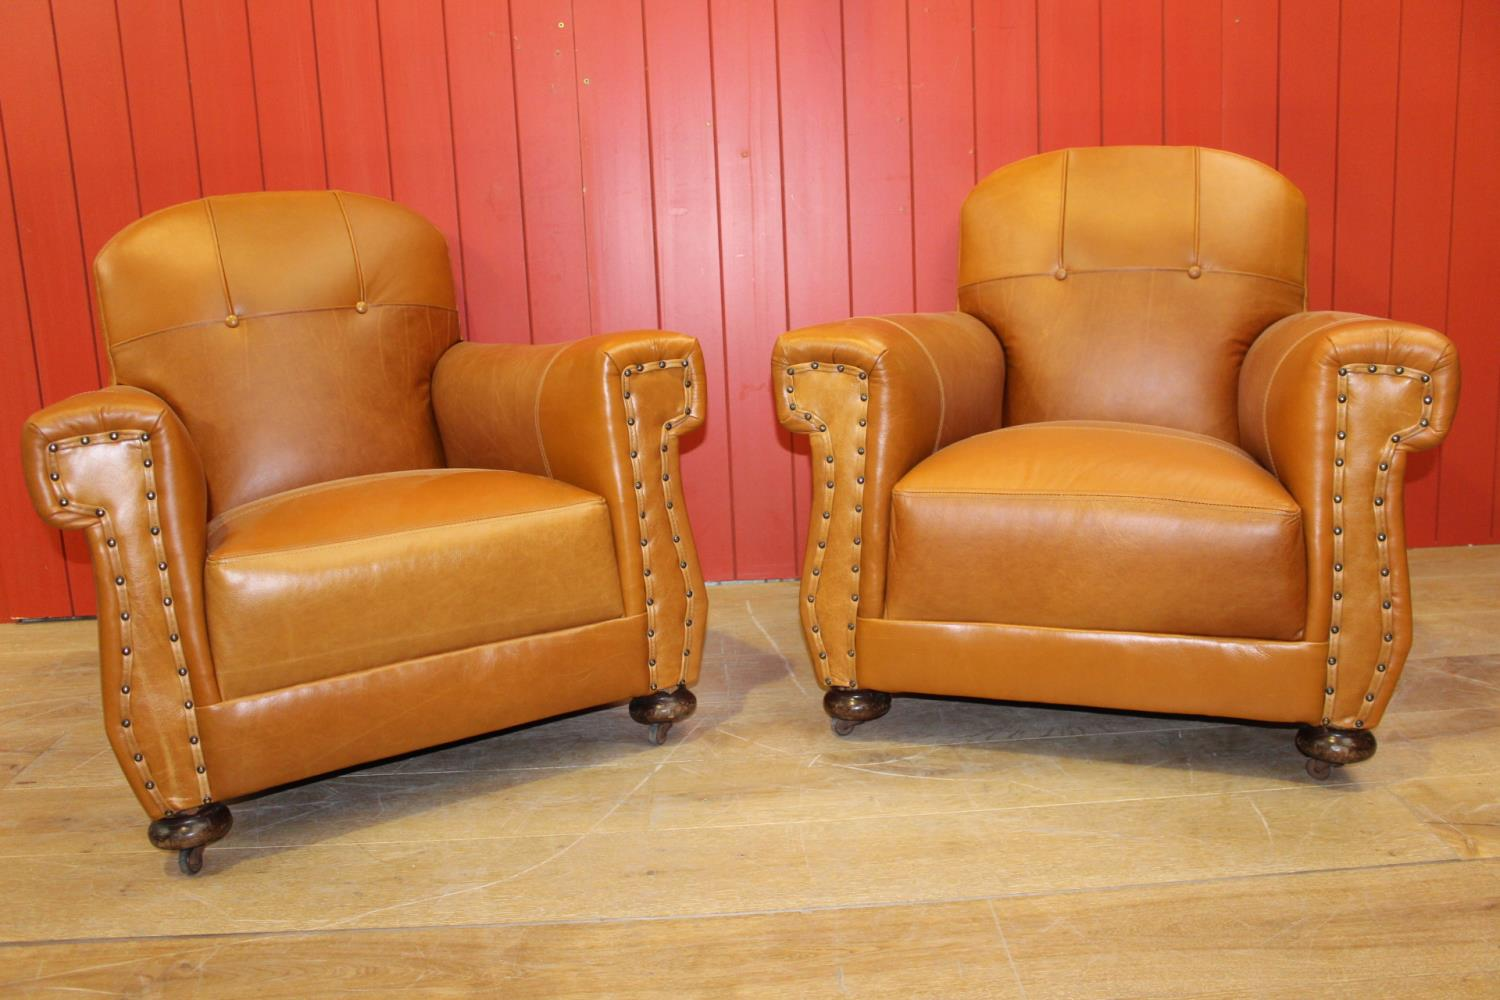 Pair of leather upholstered club chairs.